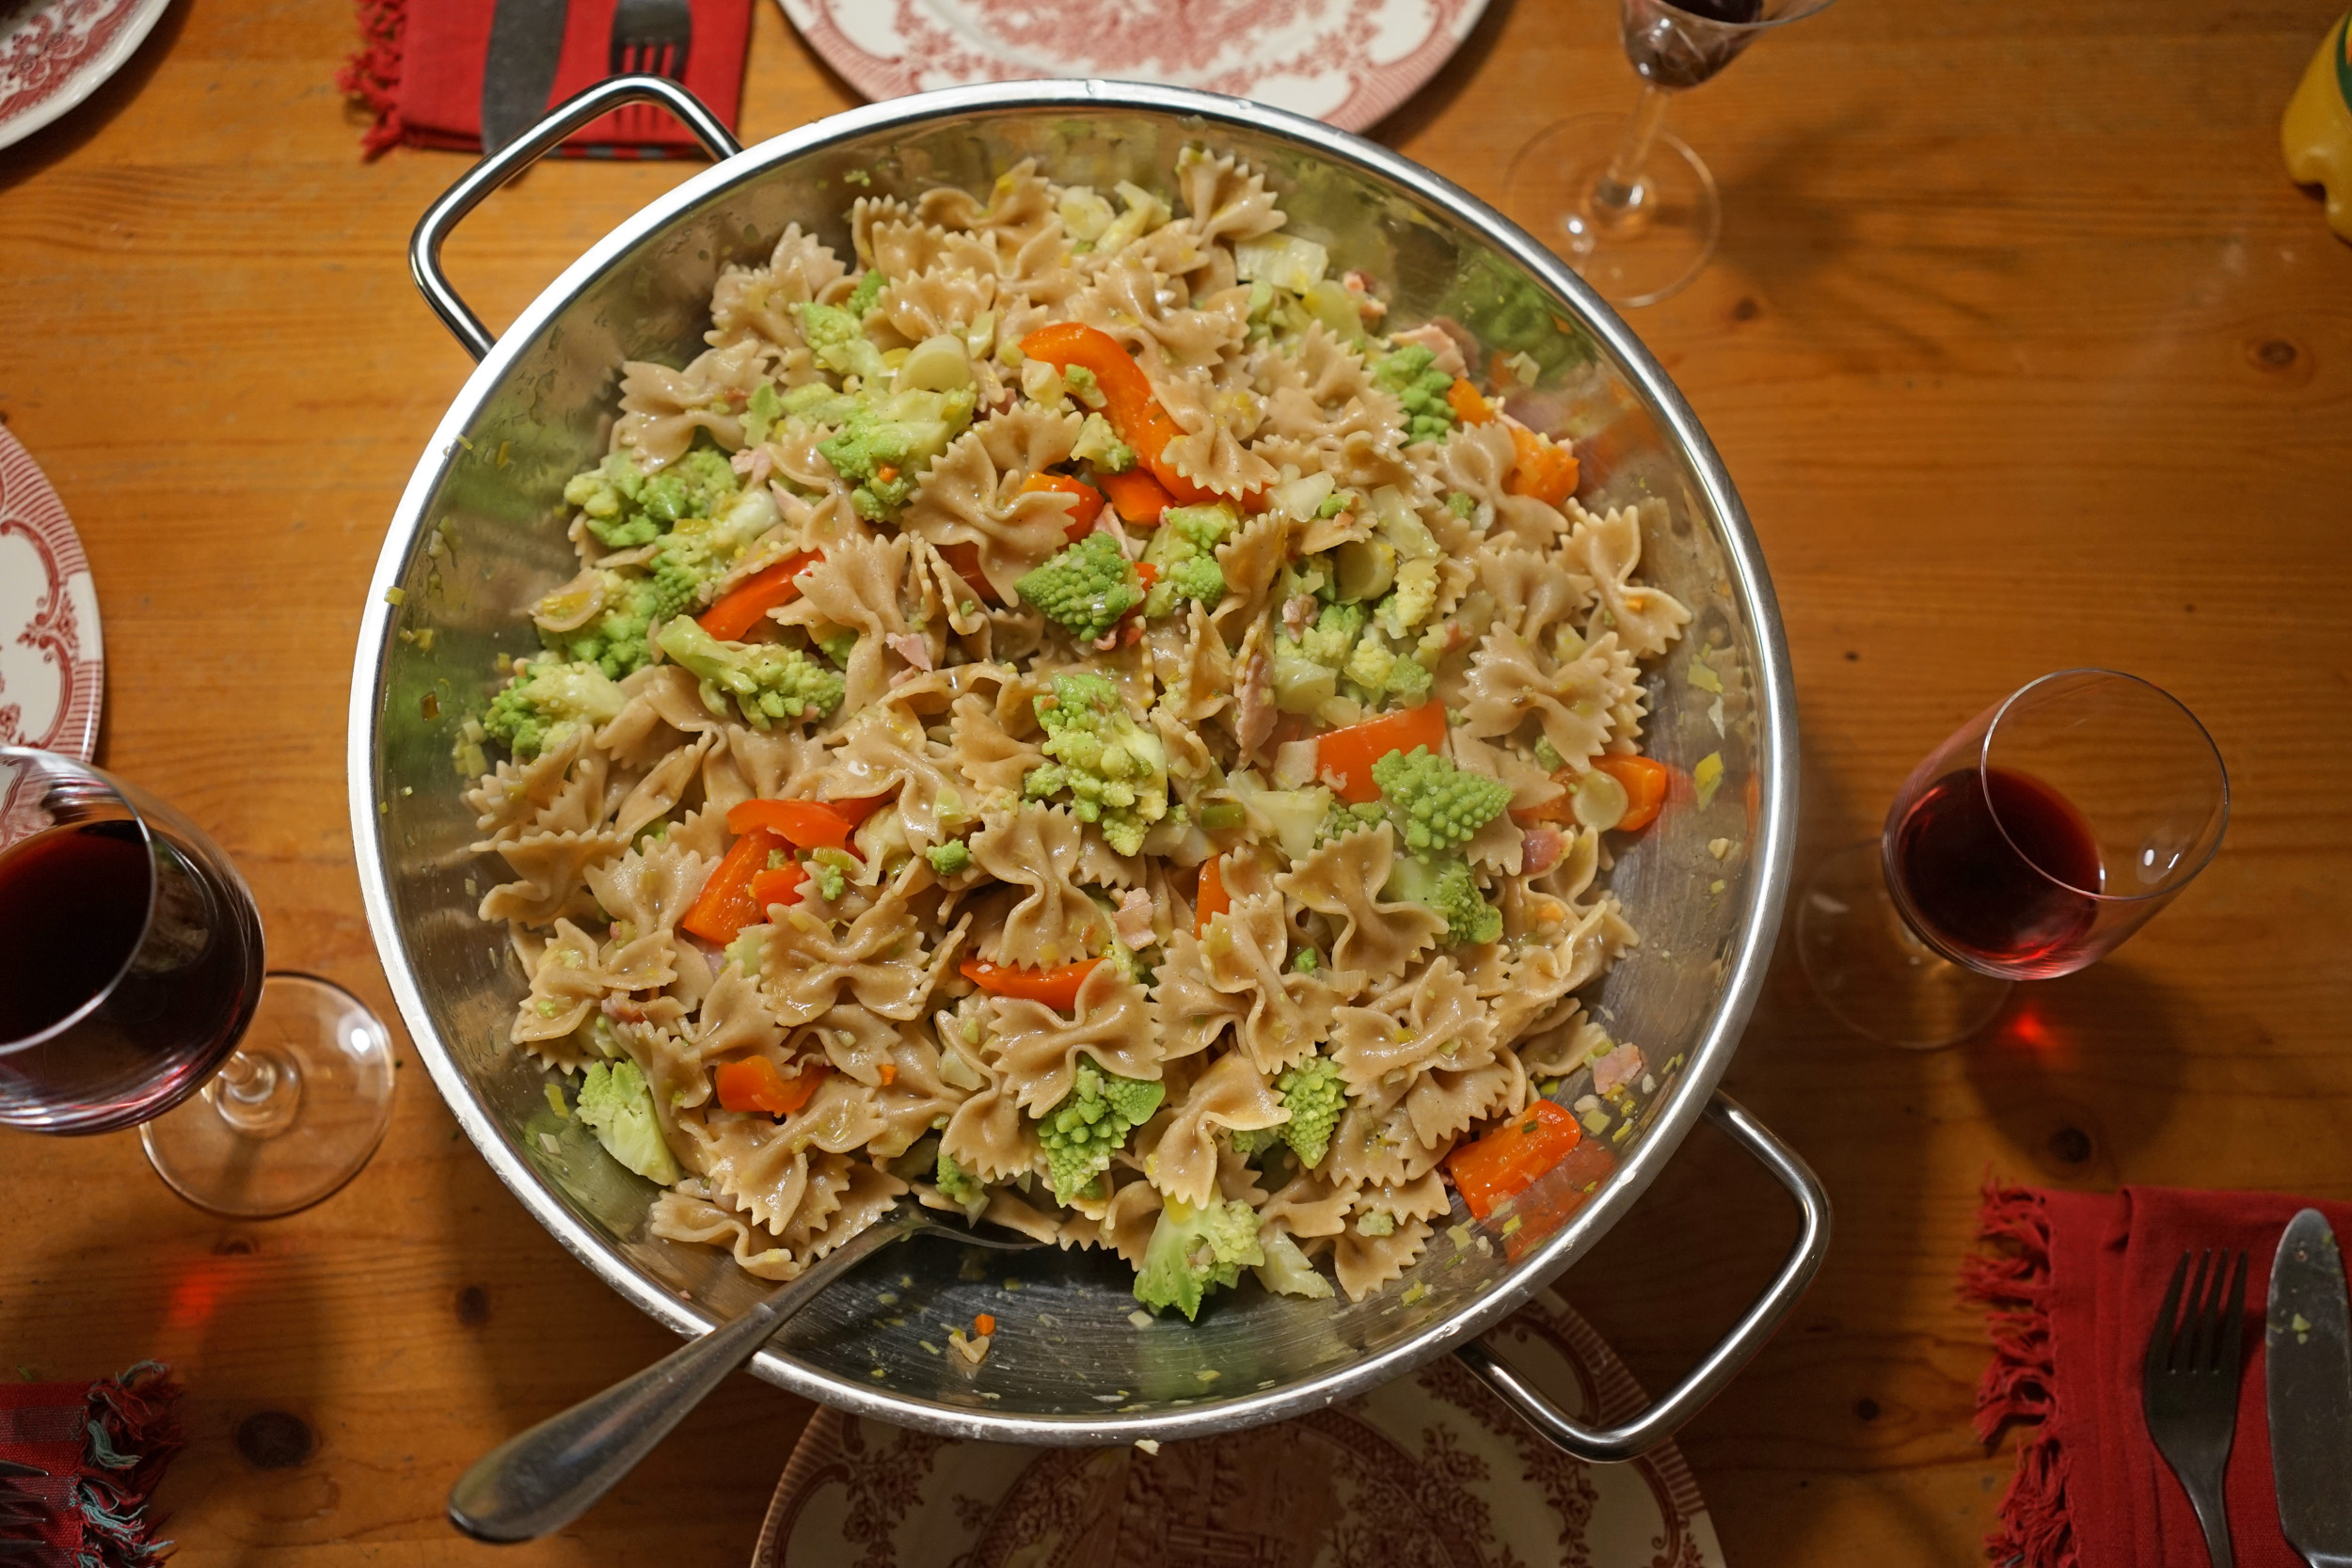 metal wok on table with butterfly pasta, red peppers, romanesco cauliflower that looks like tiny green Christmas trees